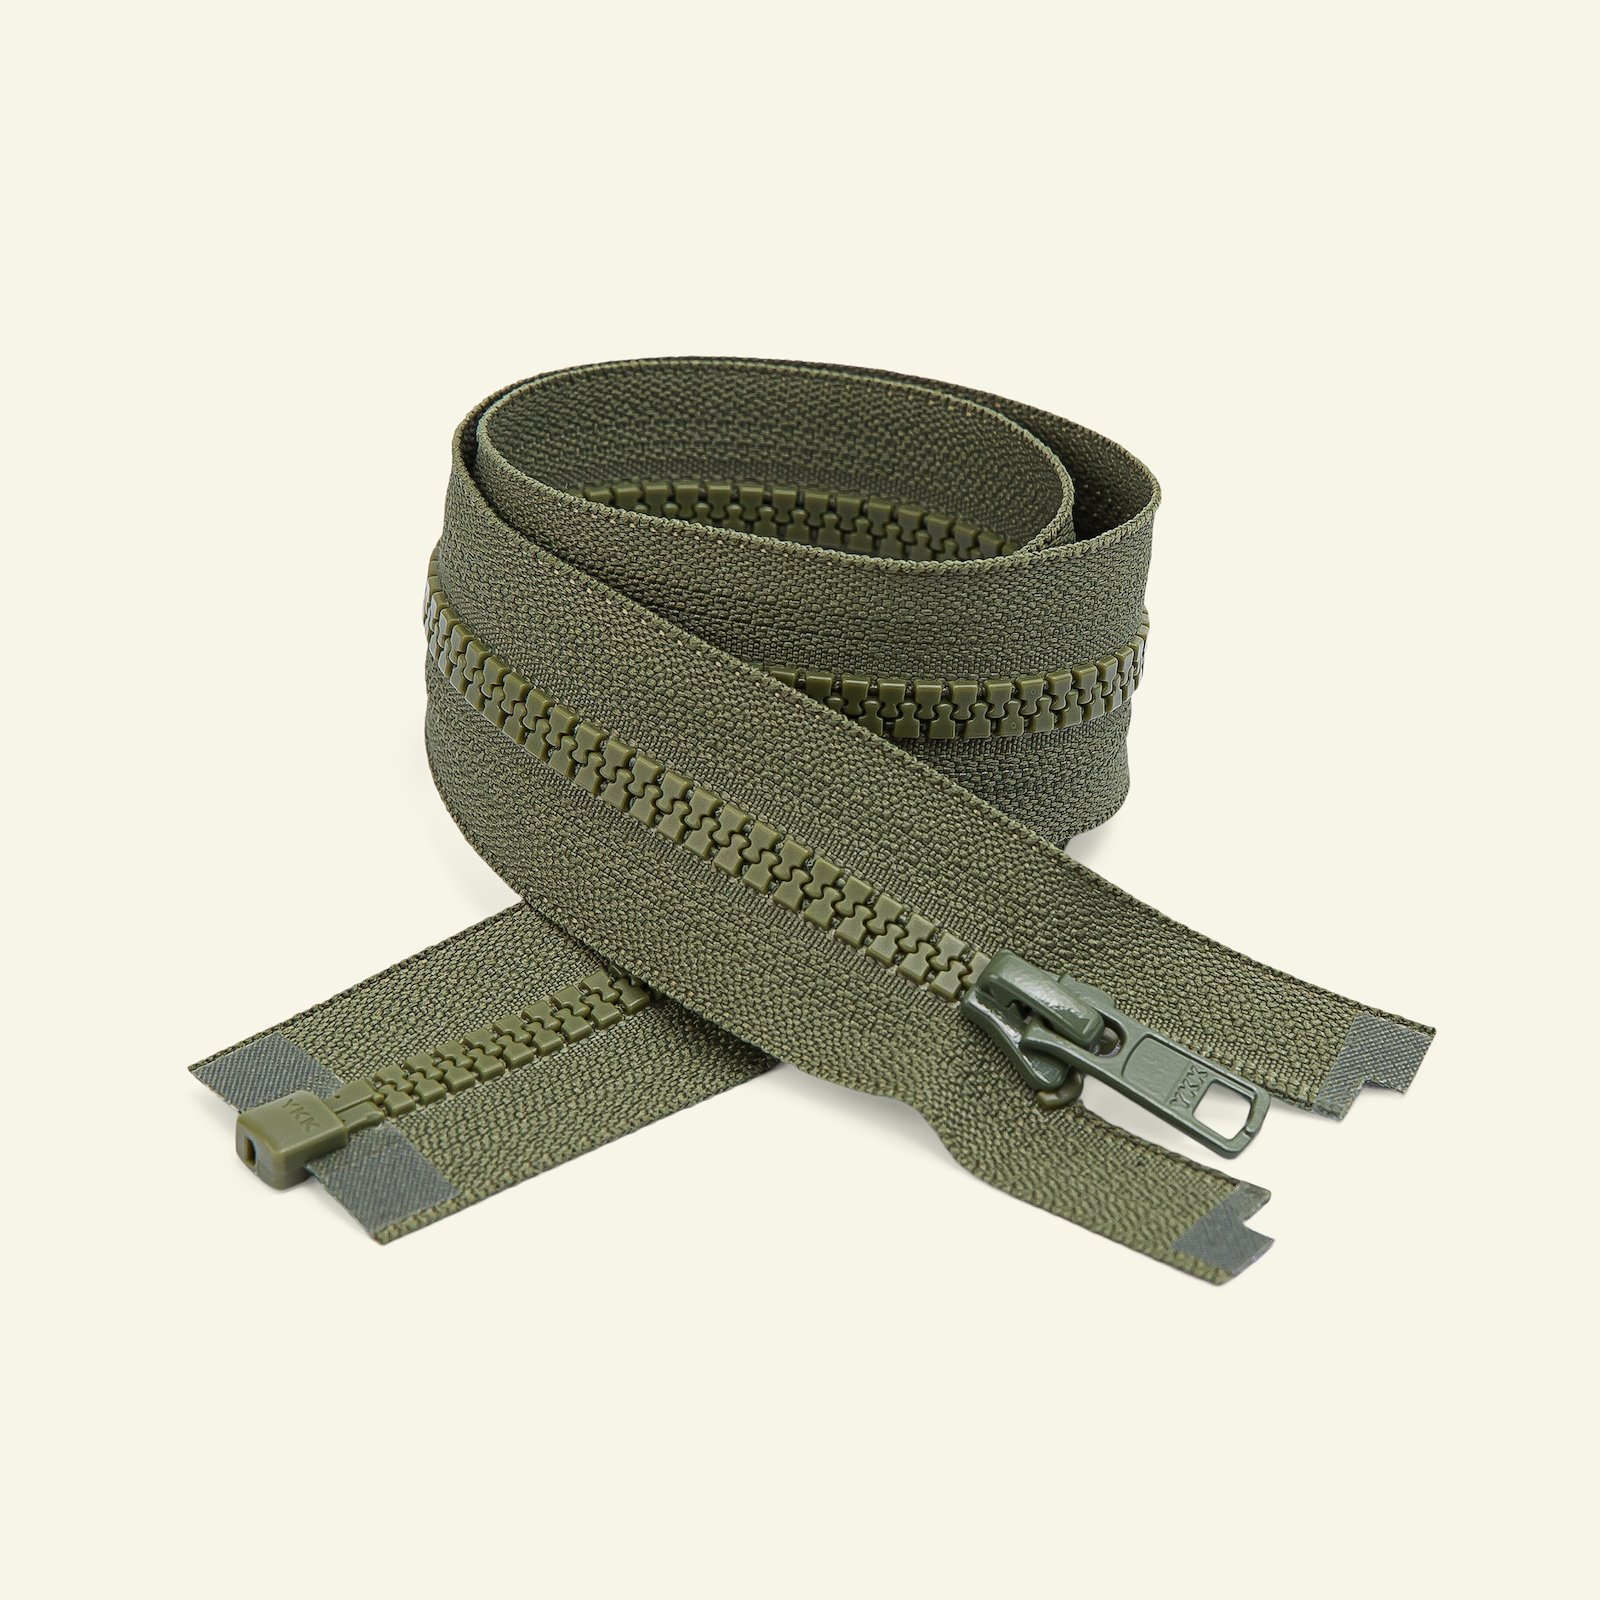 YKK zip 6mm open end 50cm army x50033_pack